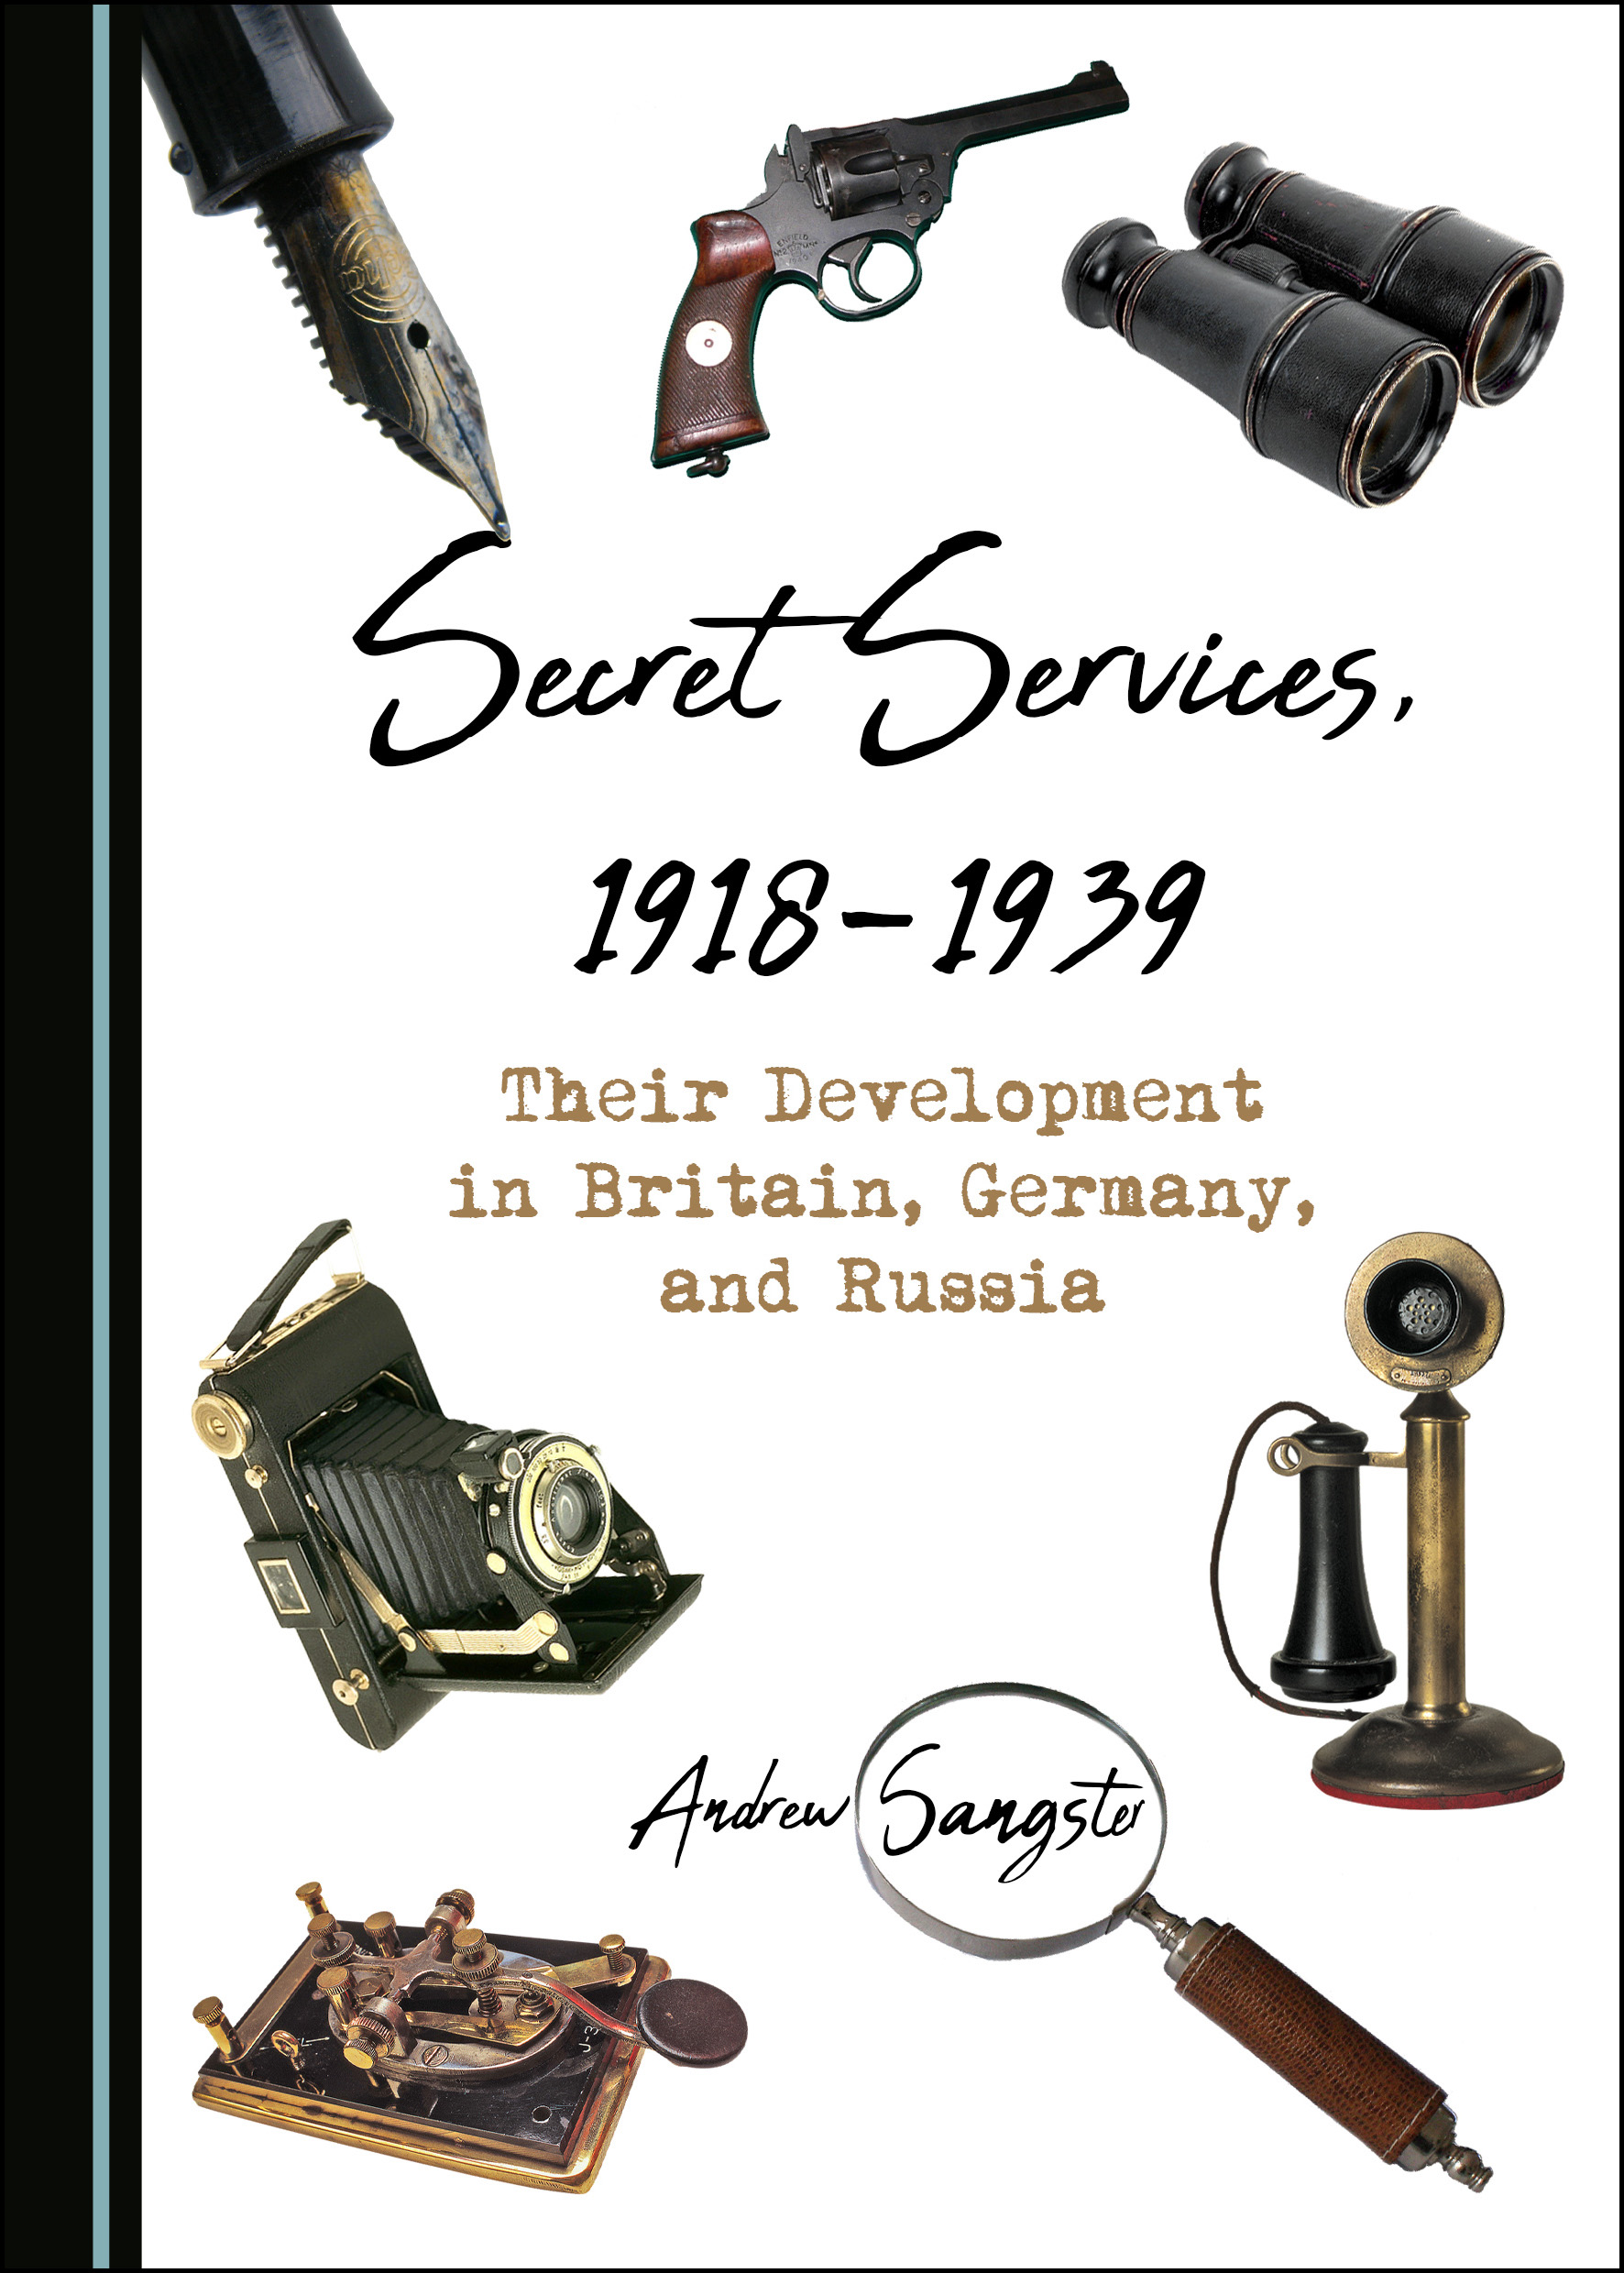 Secret Services, 1918-1939: Their Development in Britain, Germany, and Russia